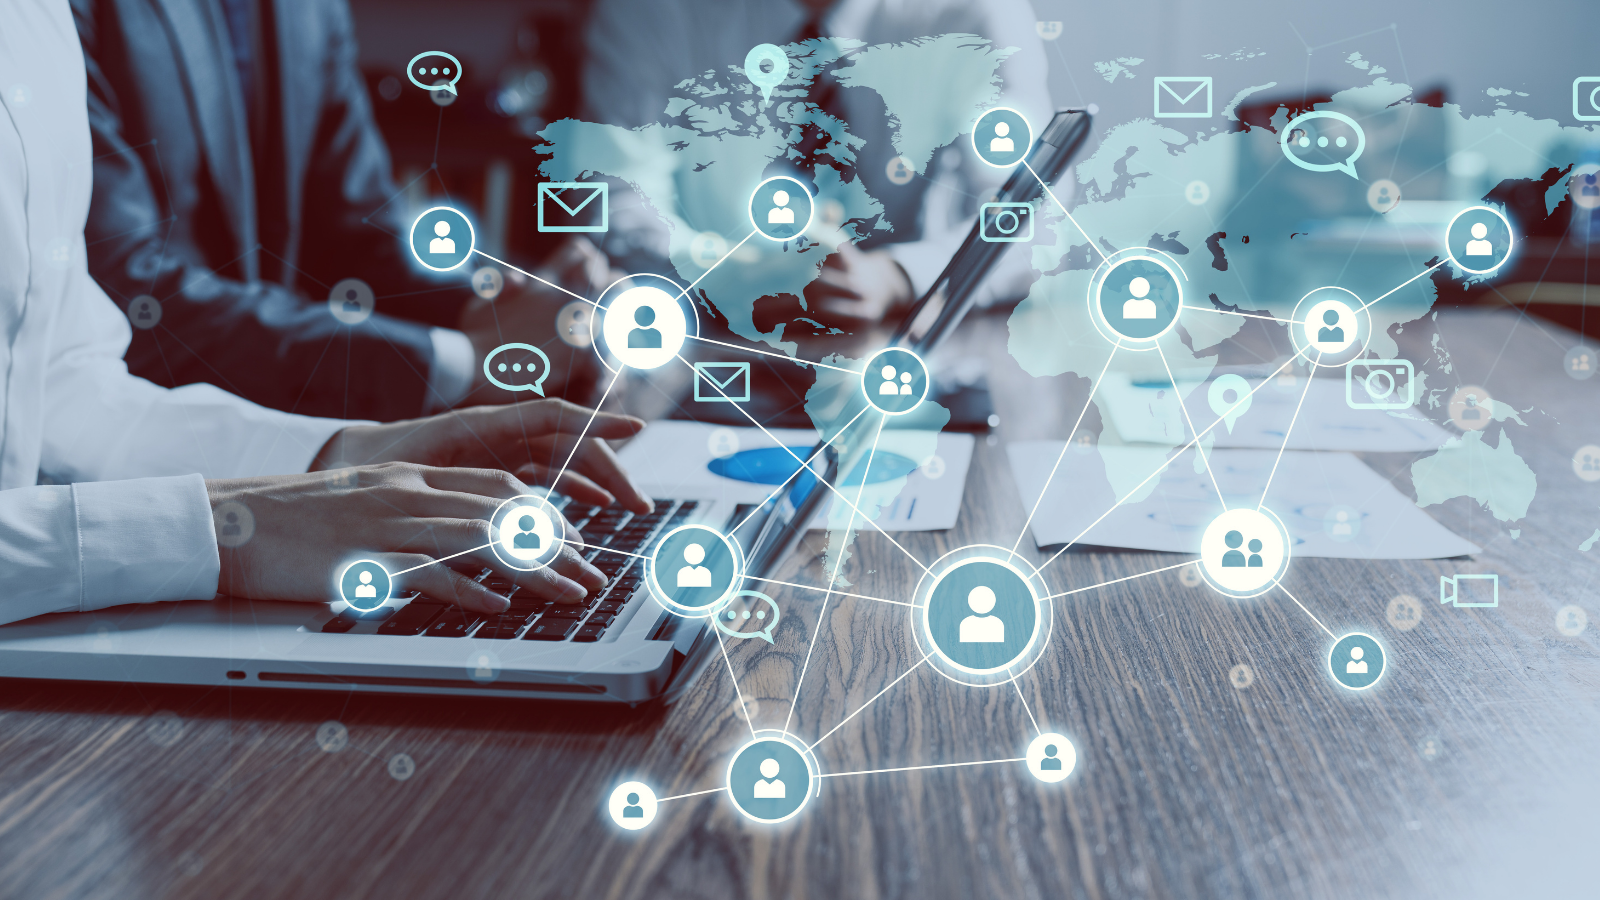 Comply-to-Connect (C2C): The Three Wire solution to cybersecurity threats